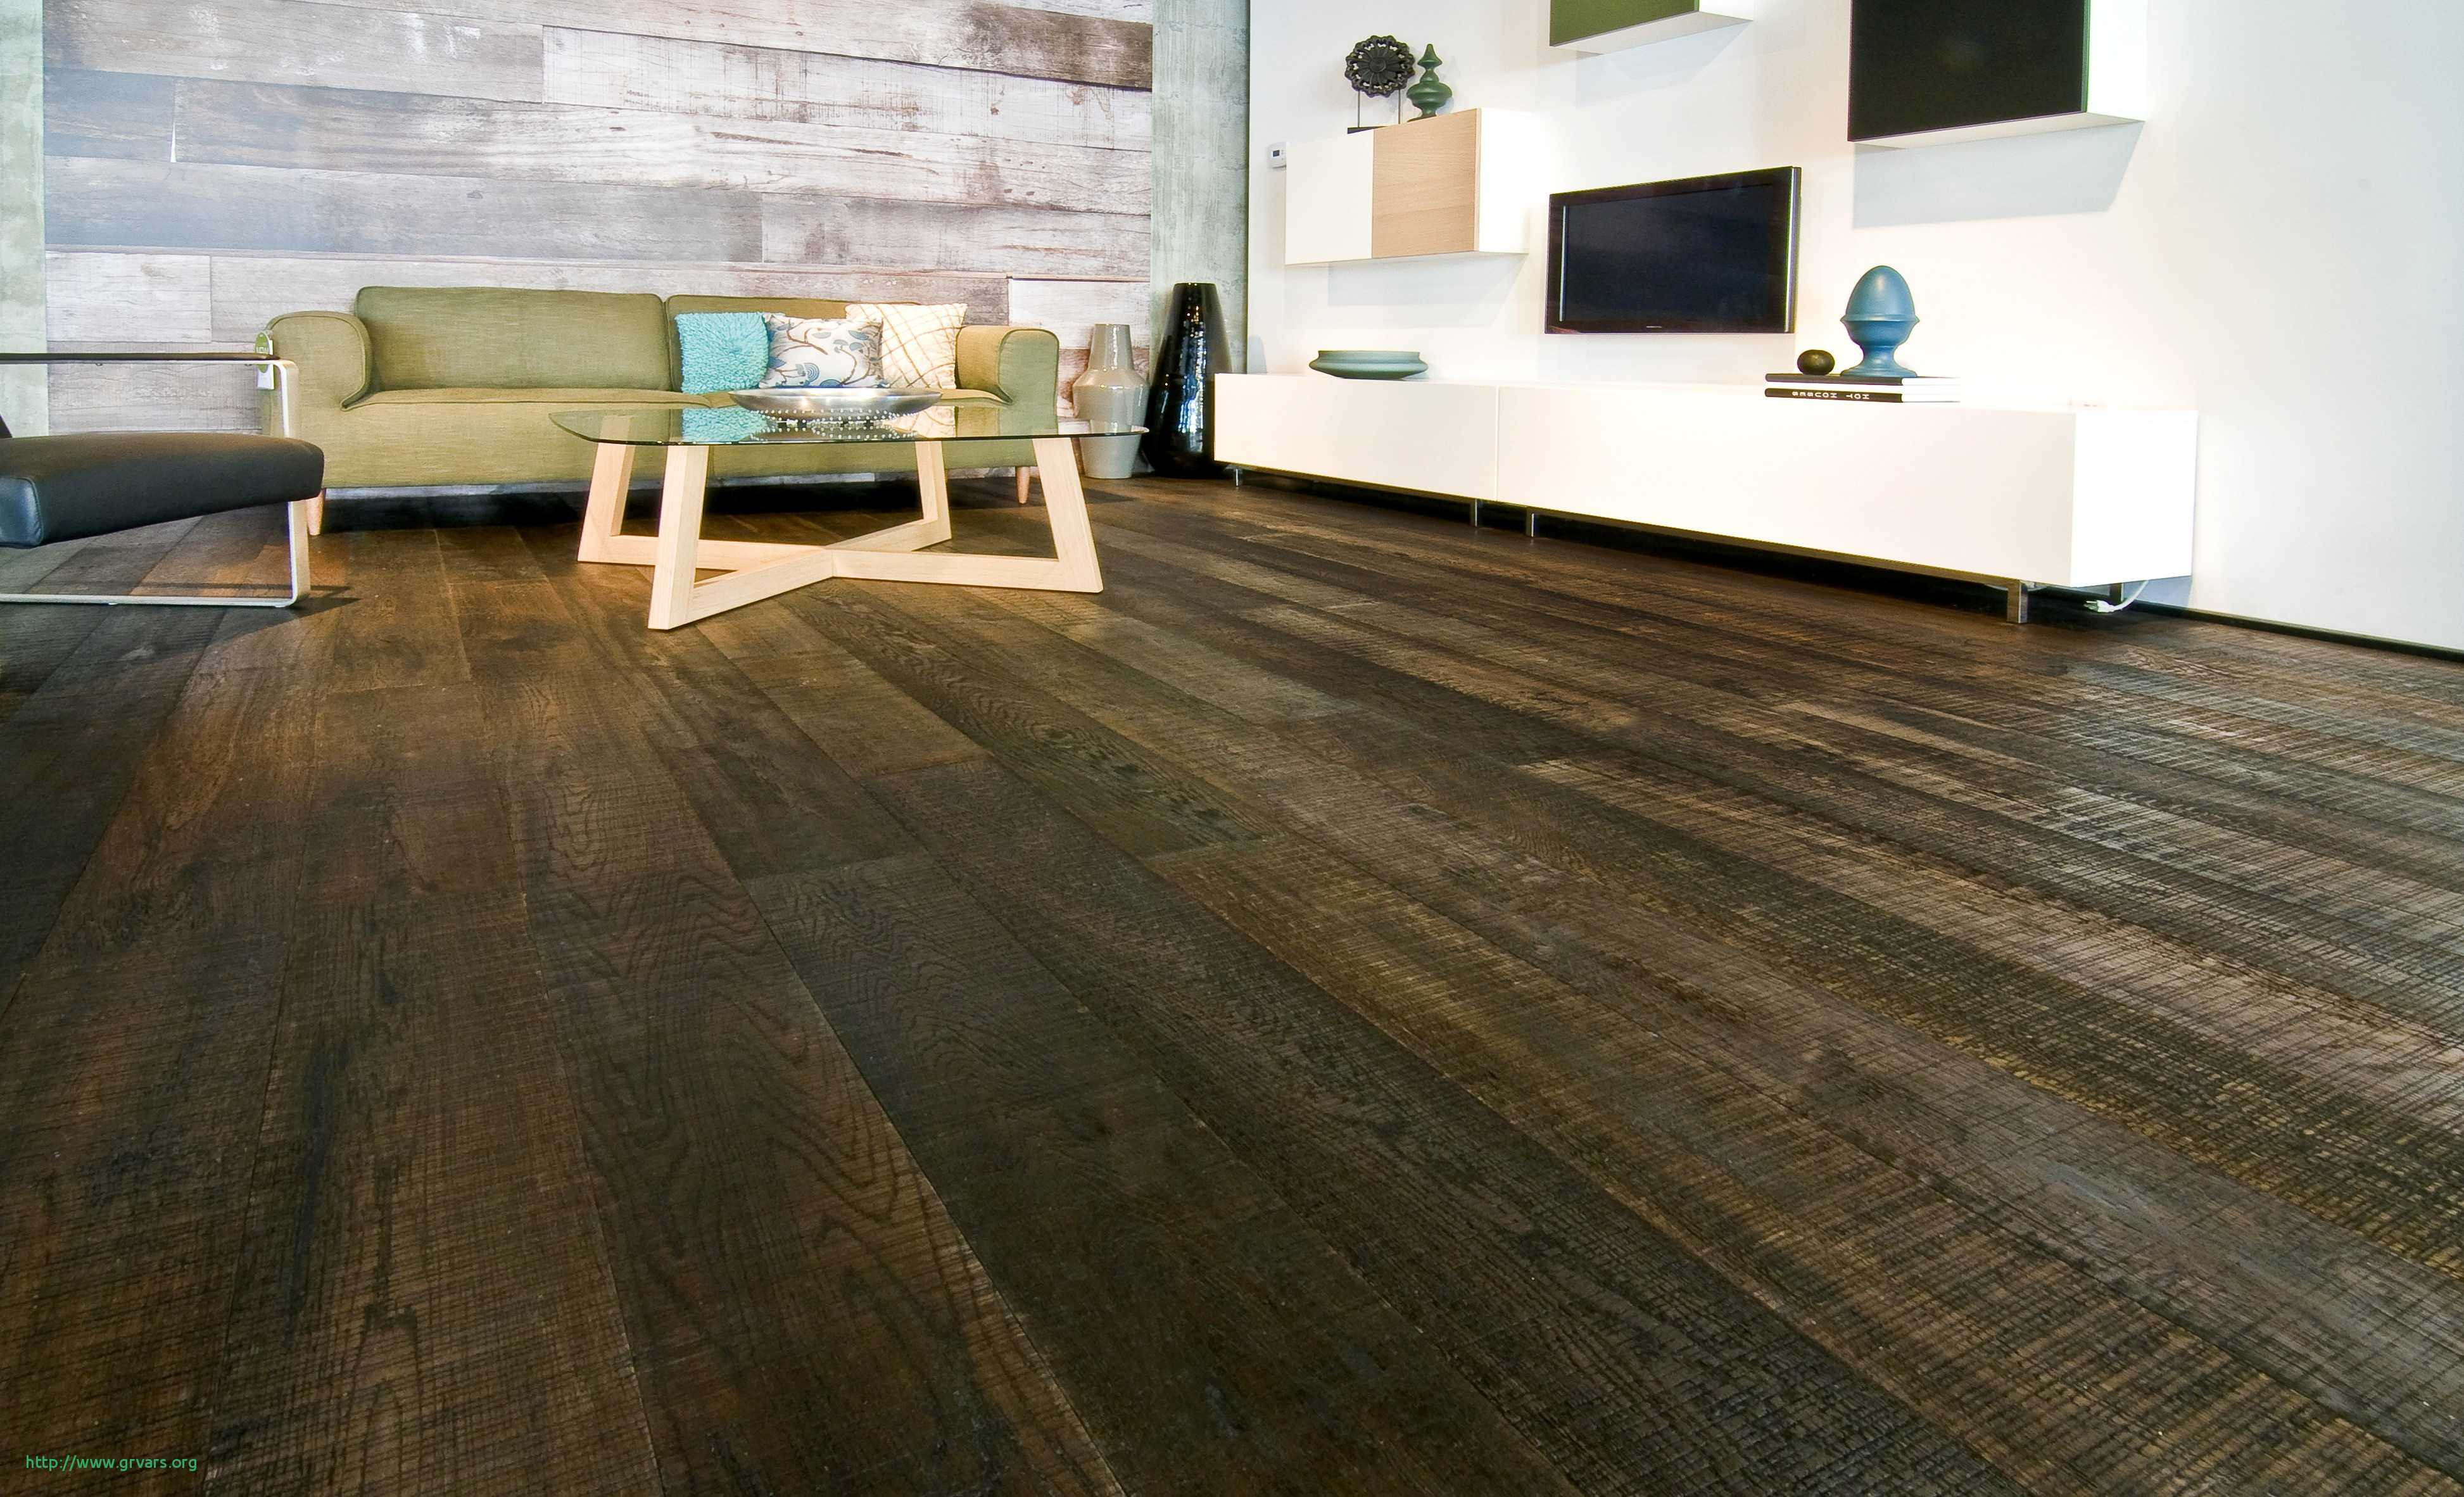 hardwood floor refinishing columbus ohio of 24 impressionnant most affordable hardwood floors ideas blog in full size of bedroom engaging discount hardwood flooring 5 where to buy inspirational 0d grace place